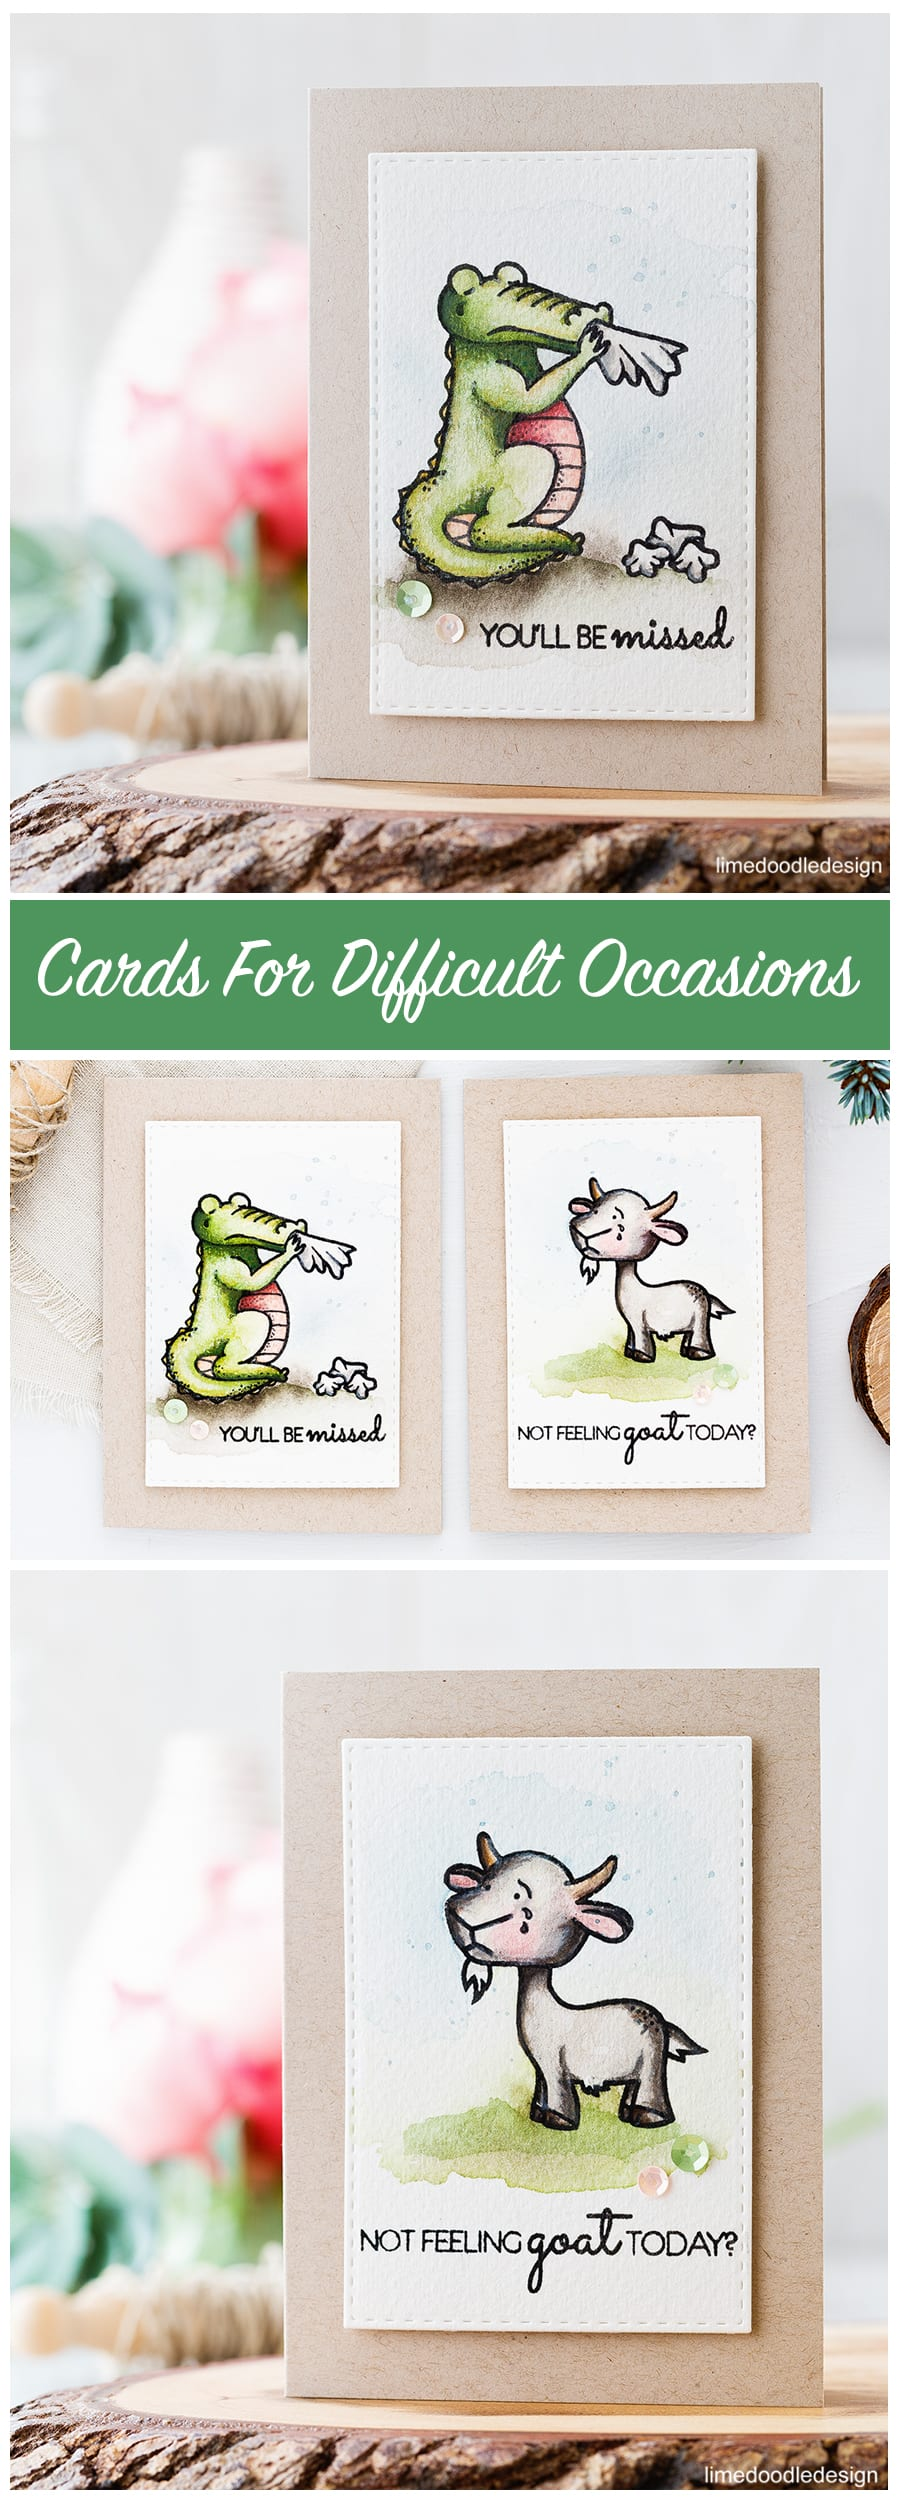 Cards for difficult occasions. Find out more about these you'll be missed and get well soon cards by clicking on the following link: http://limedoodledesign.com/2016/11/cards-for-difficult-occasions/